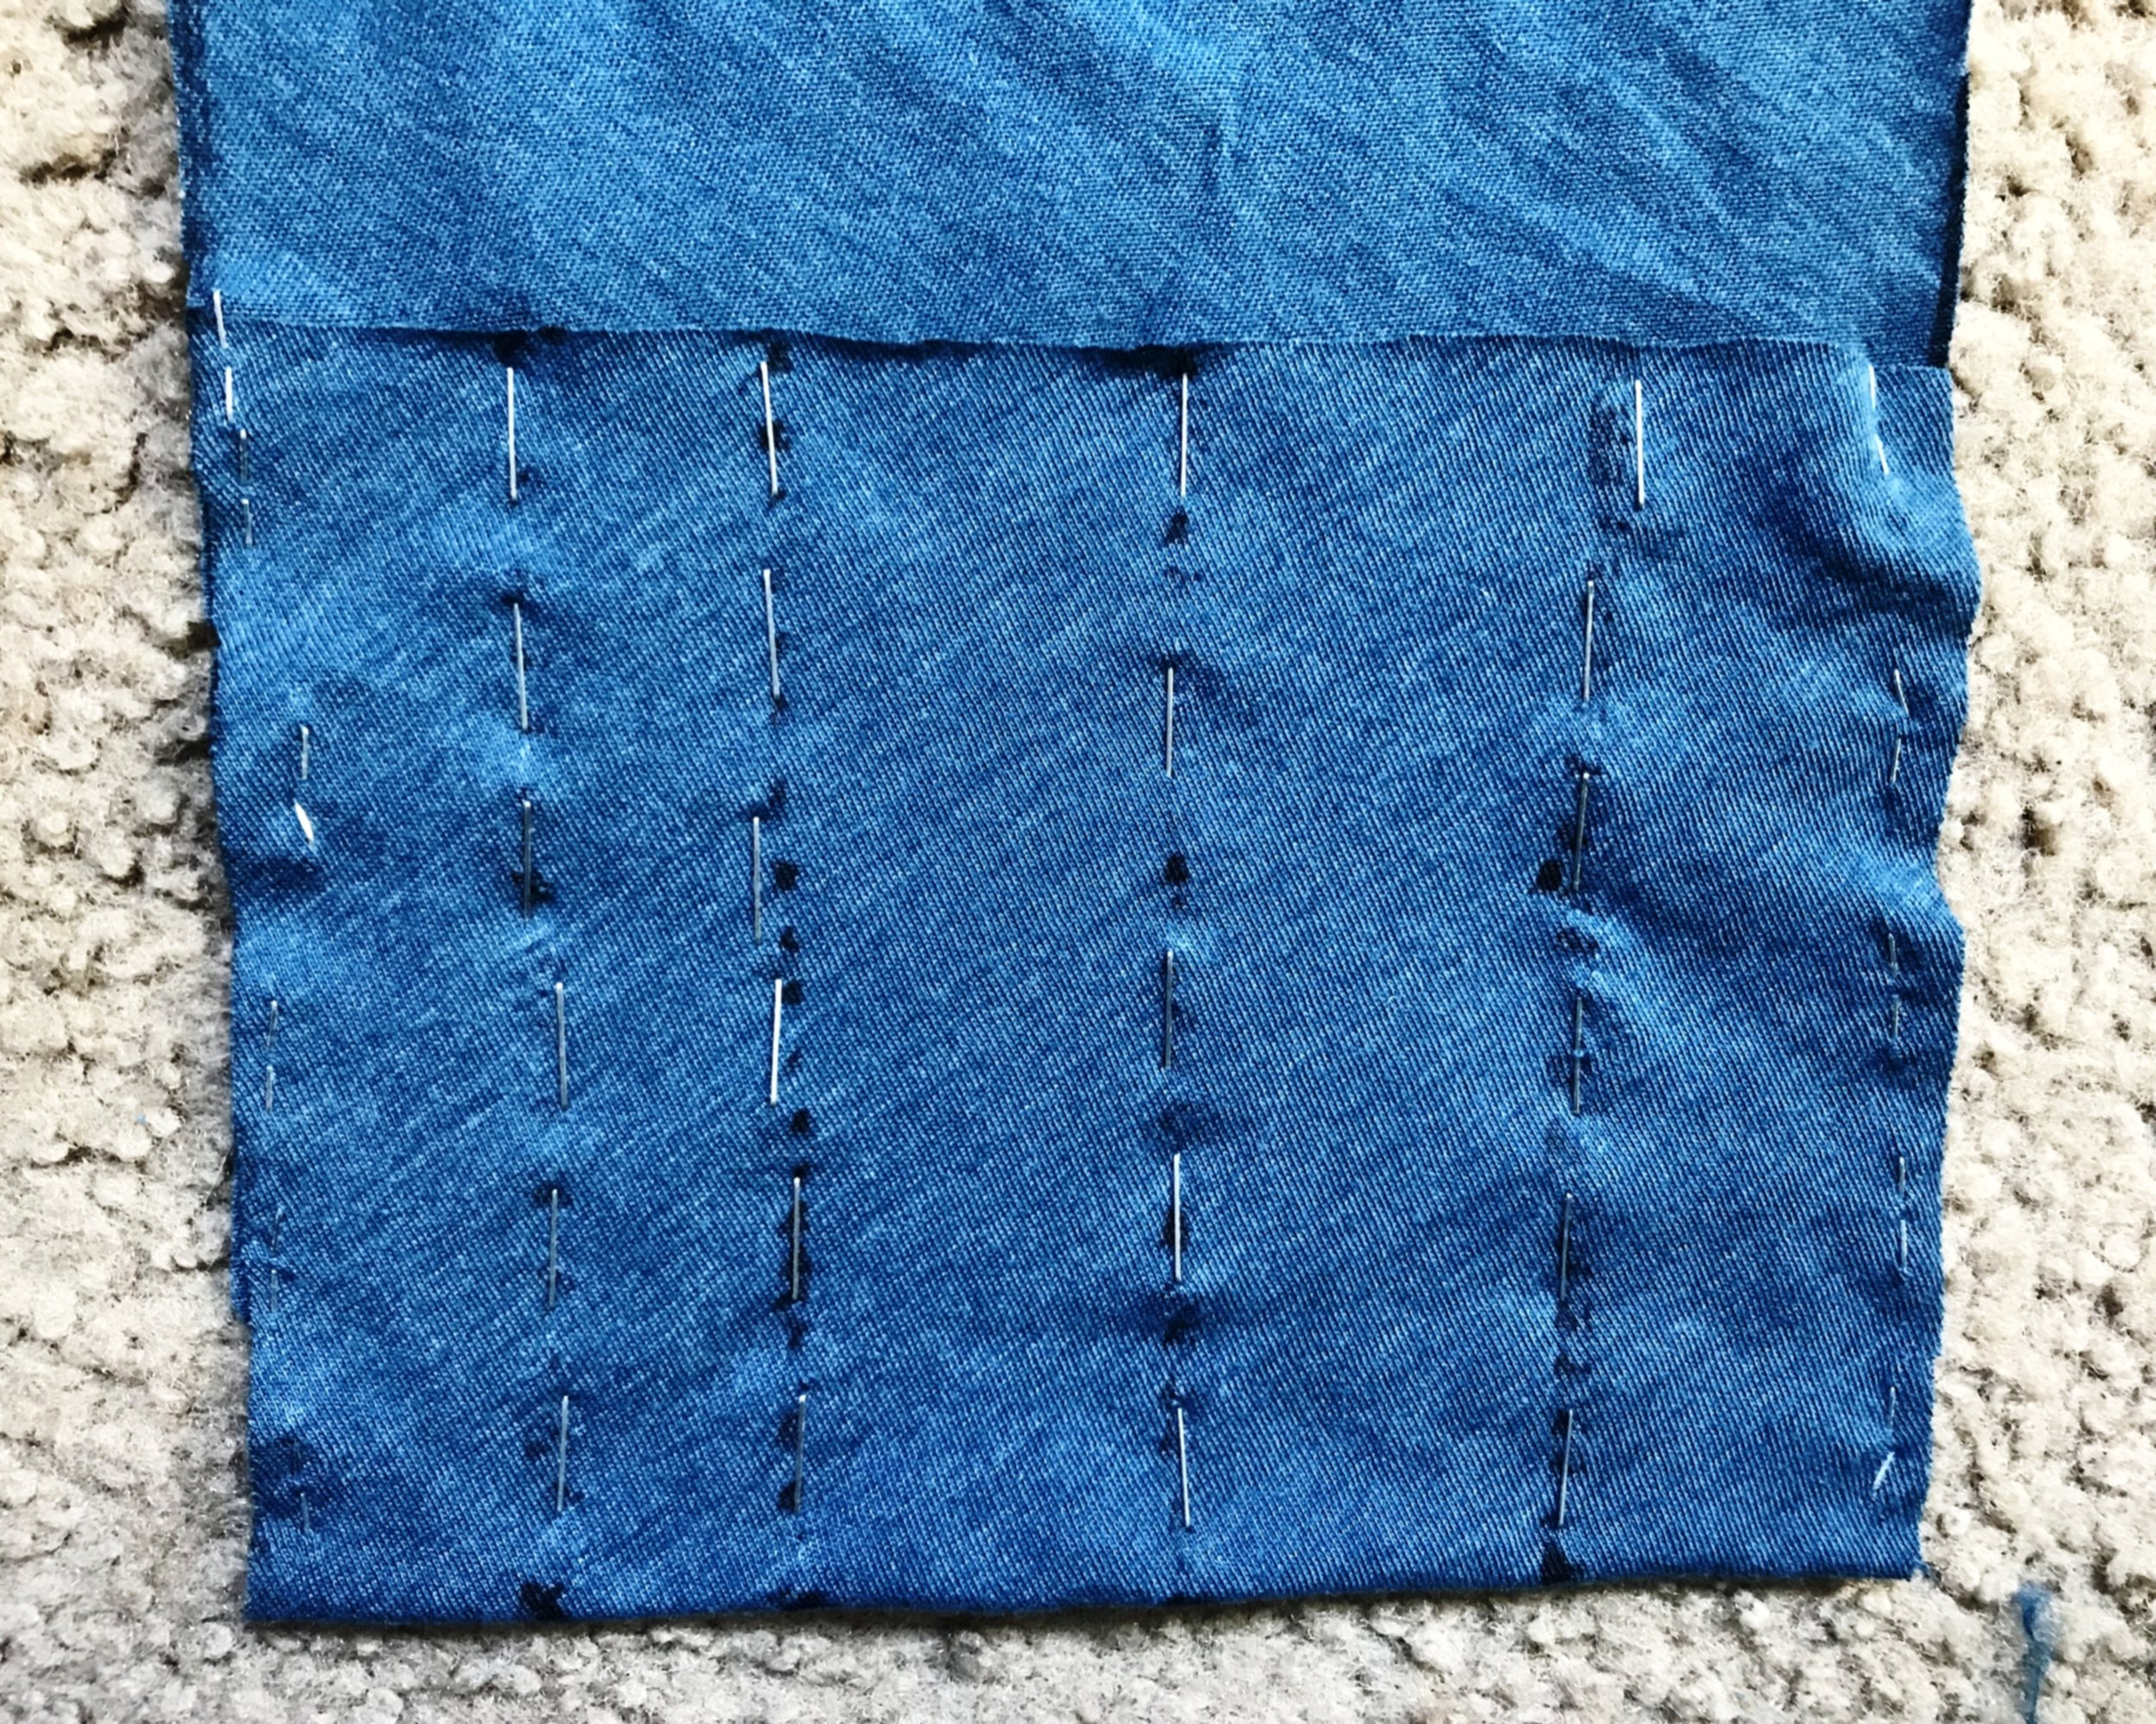 Tall pouch is divided into increments and stapled.